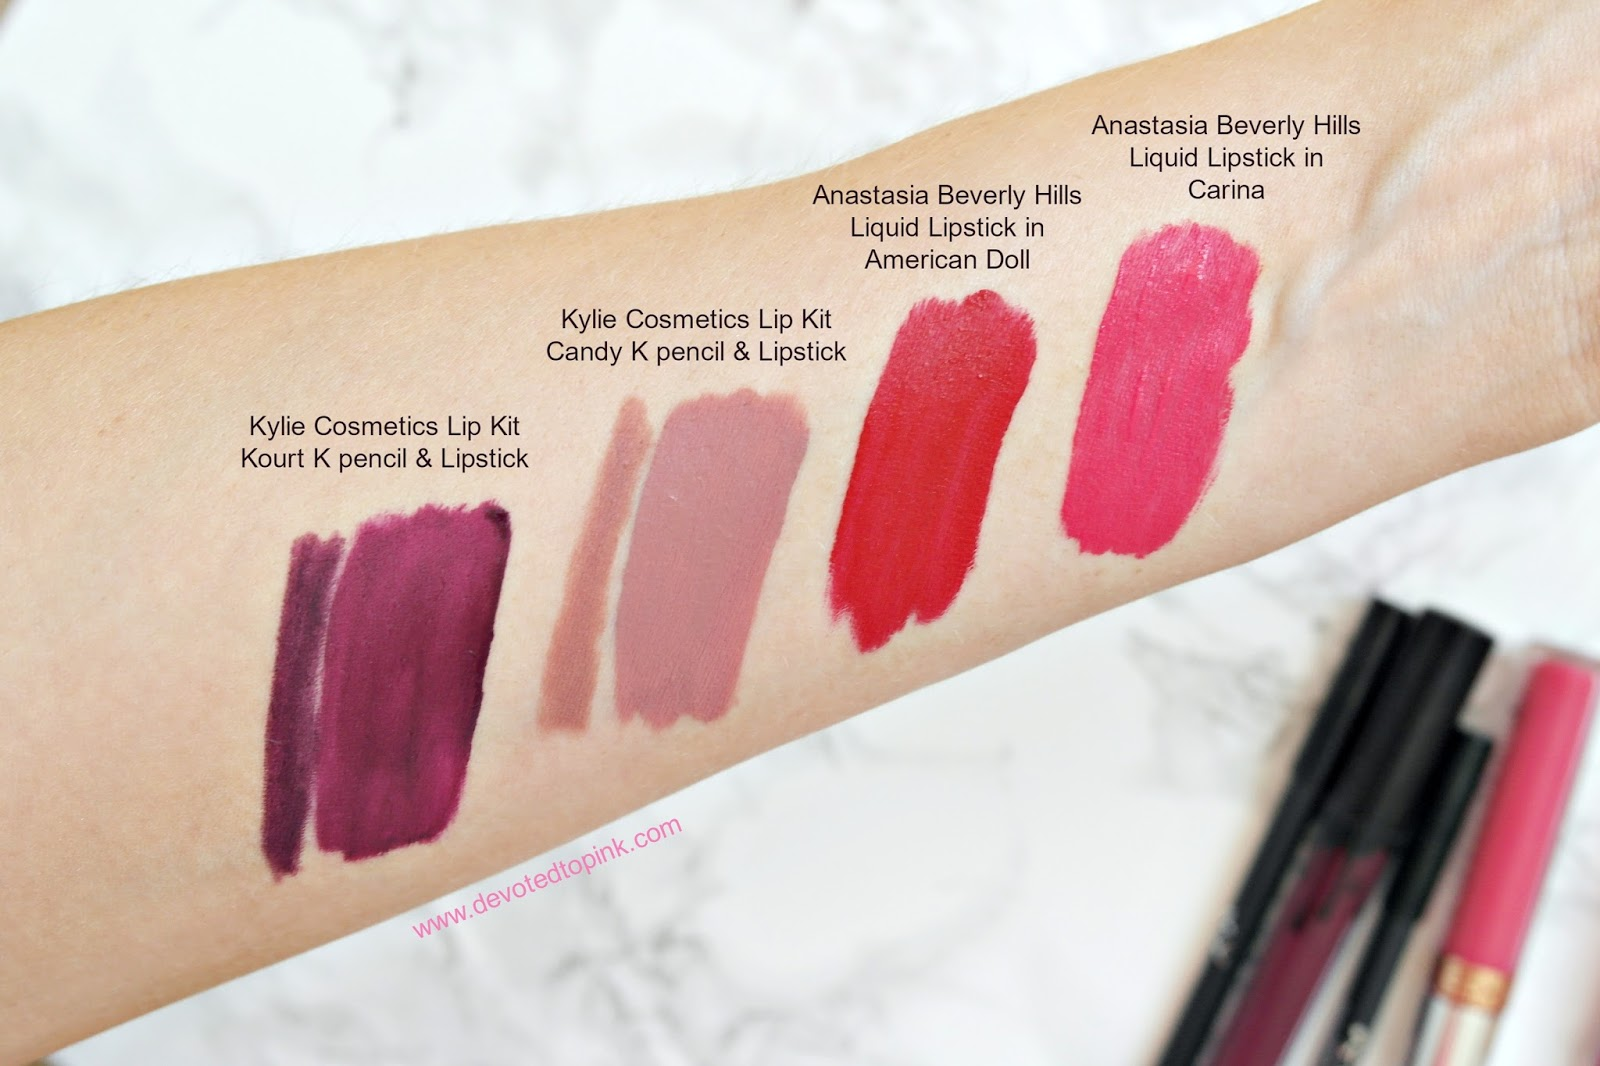 Anastasia Beverly Hills, Kylie Cosmetick lip kit, Kourt K, Candy K, carina, american doll, review, swatches